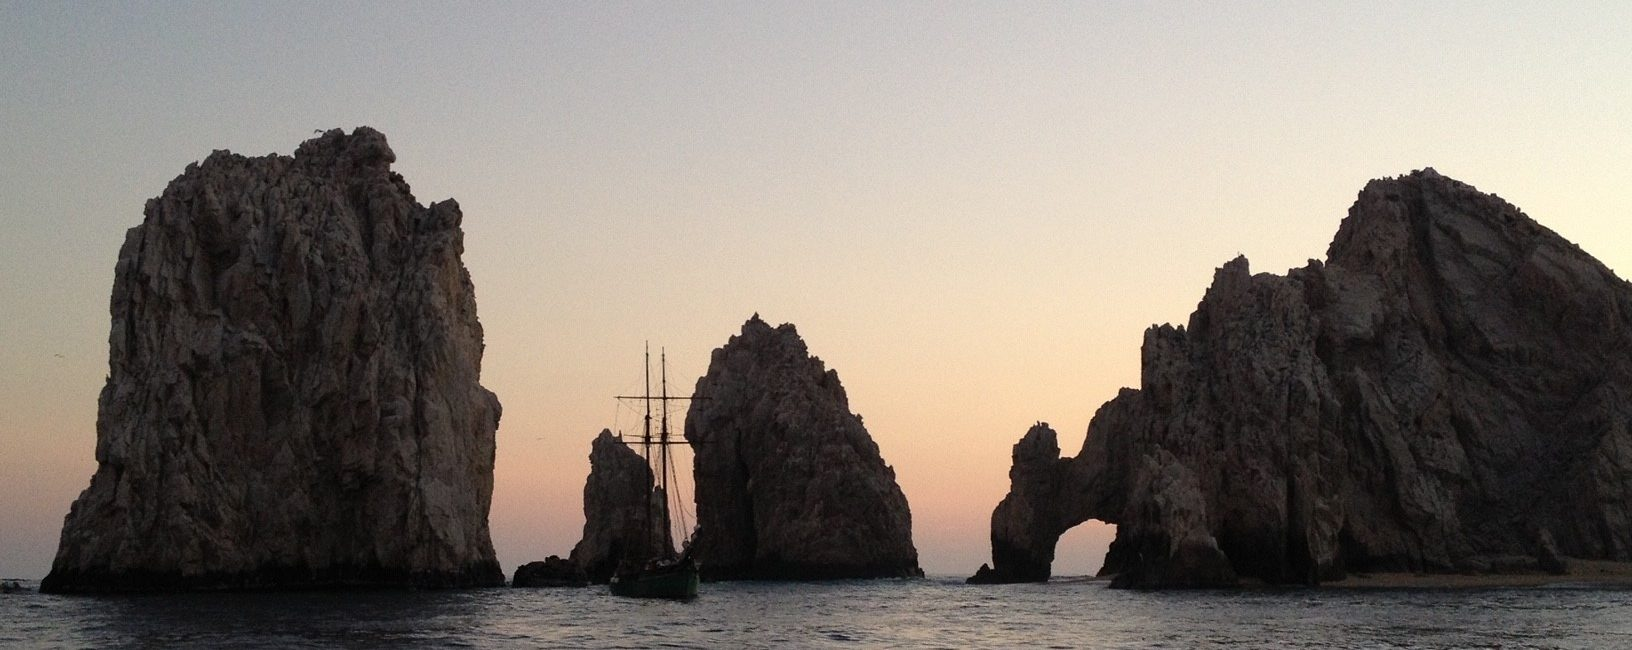 10 FUN THINGS TO DO IN LOS CABOS